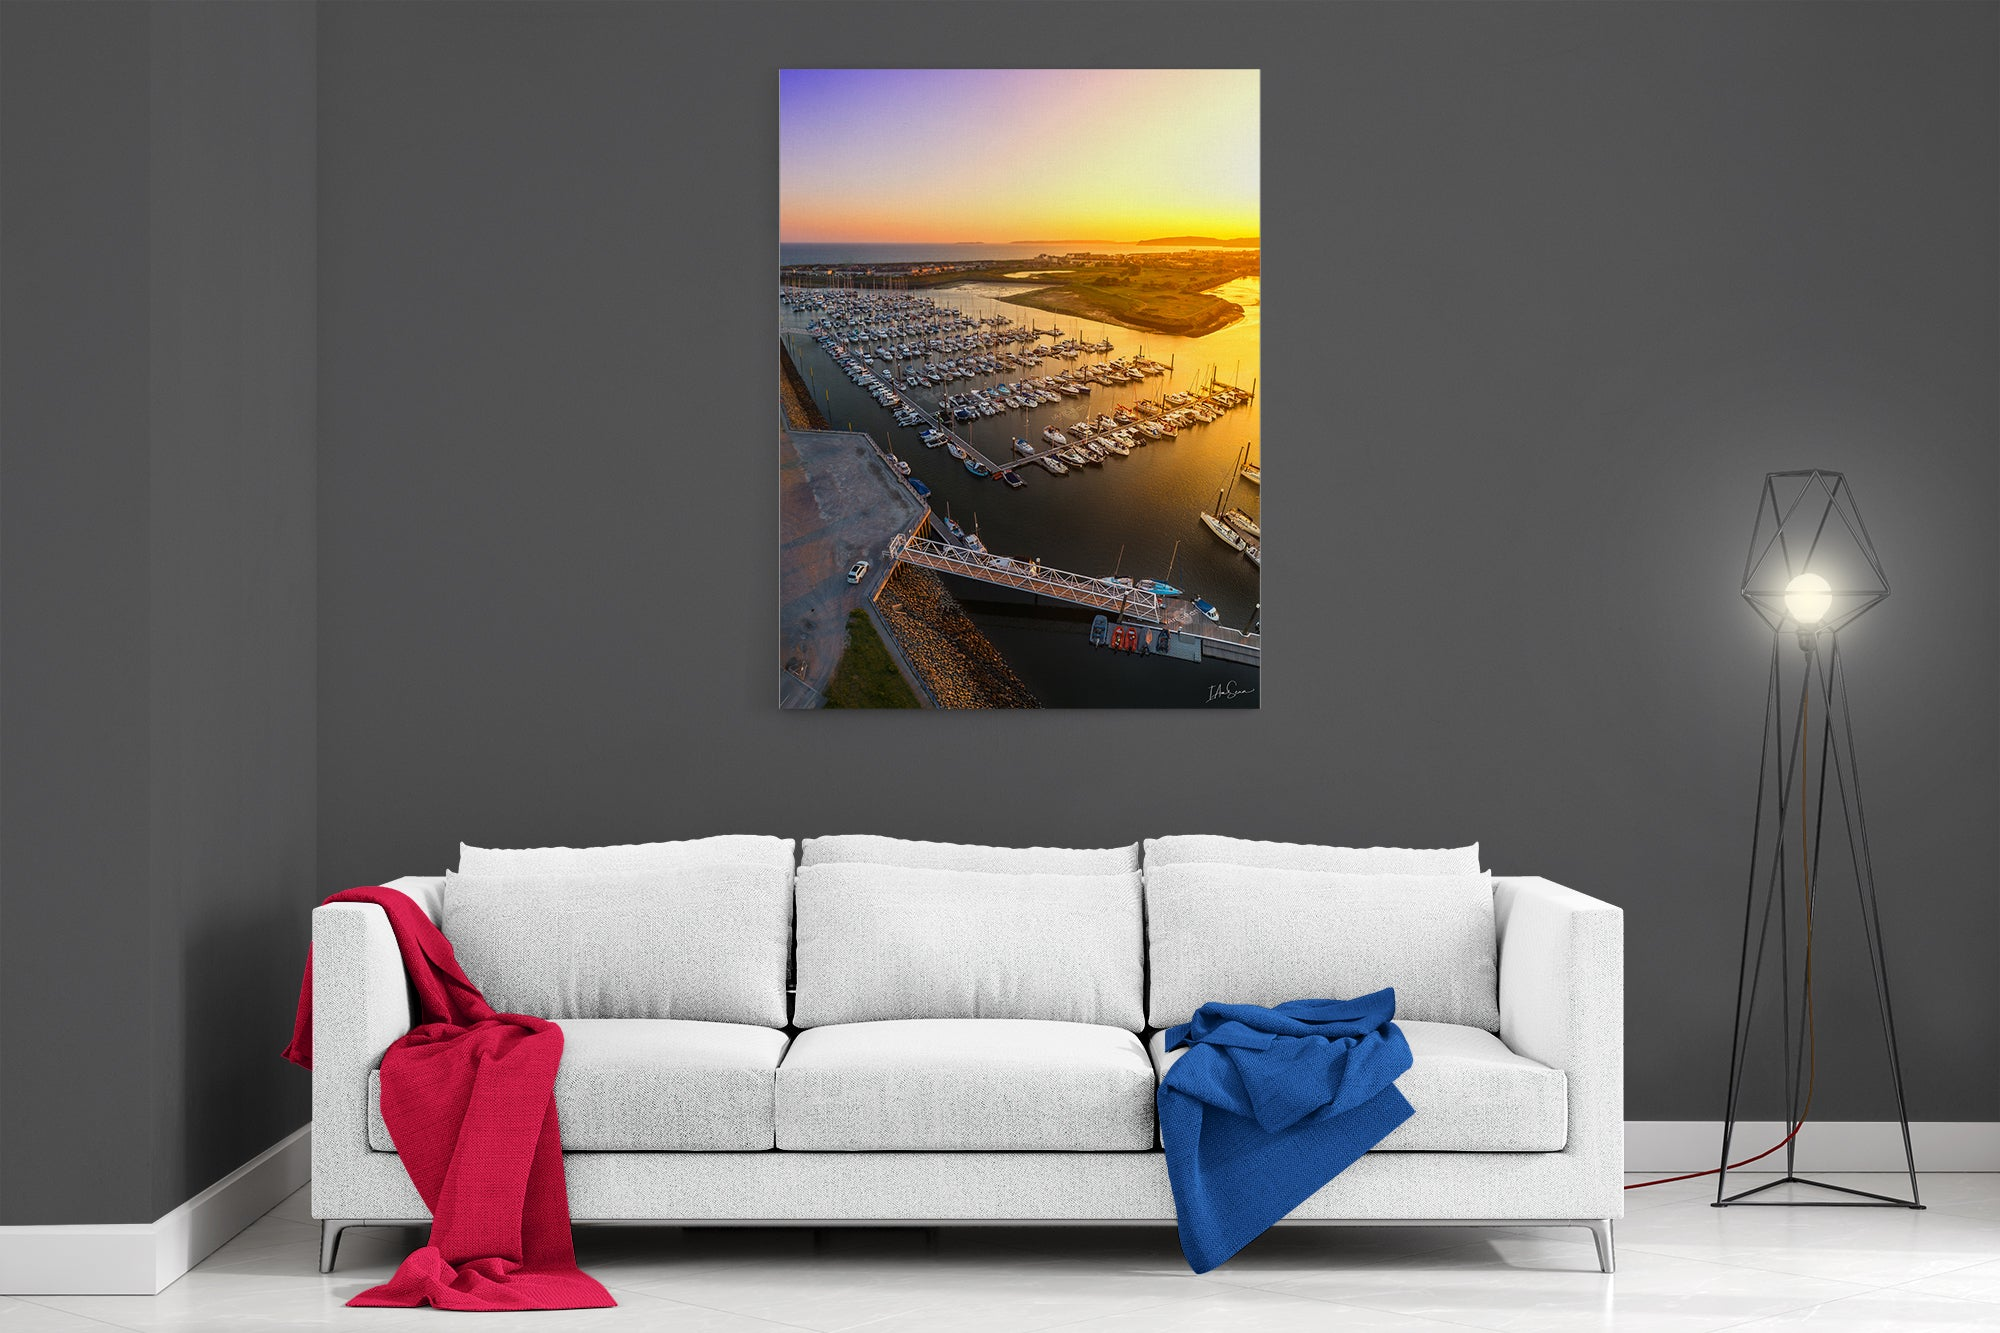 Pwllheli Marina At Sunset - Poster Print